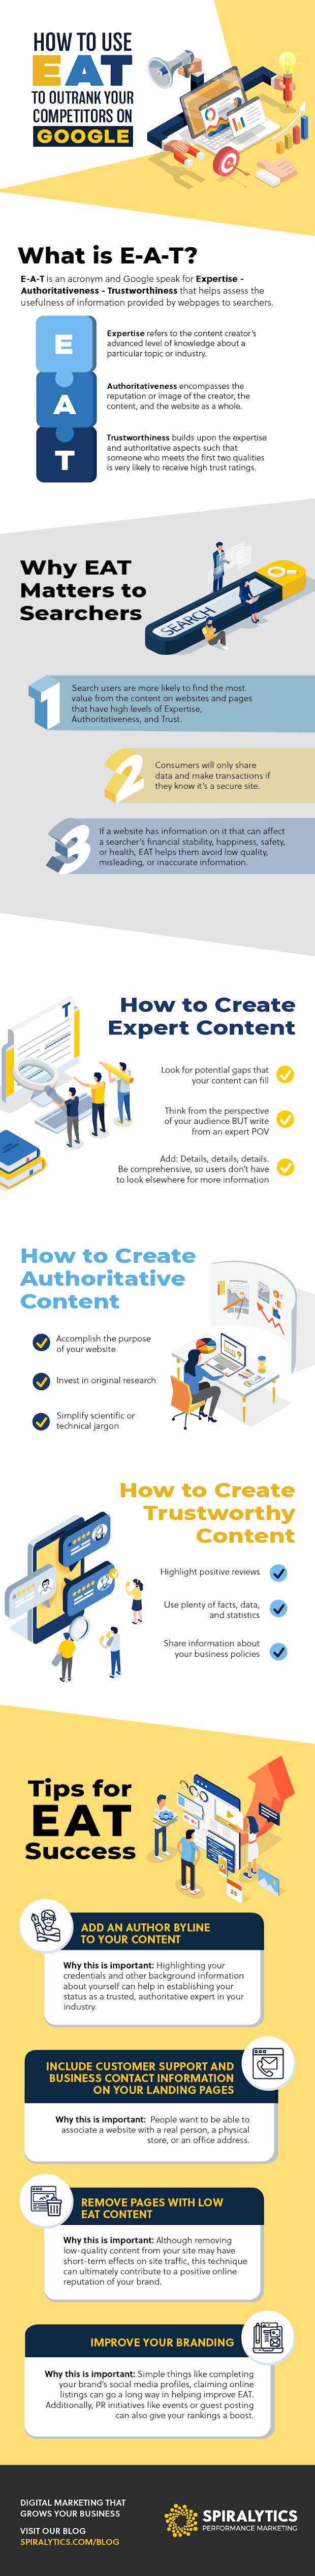 How to Use EAT to Outrank Your Competitors on Google #infographic #Google #Competitors #Search Engine #Website #Apps